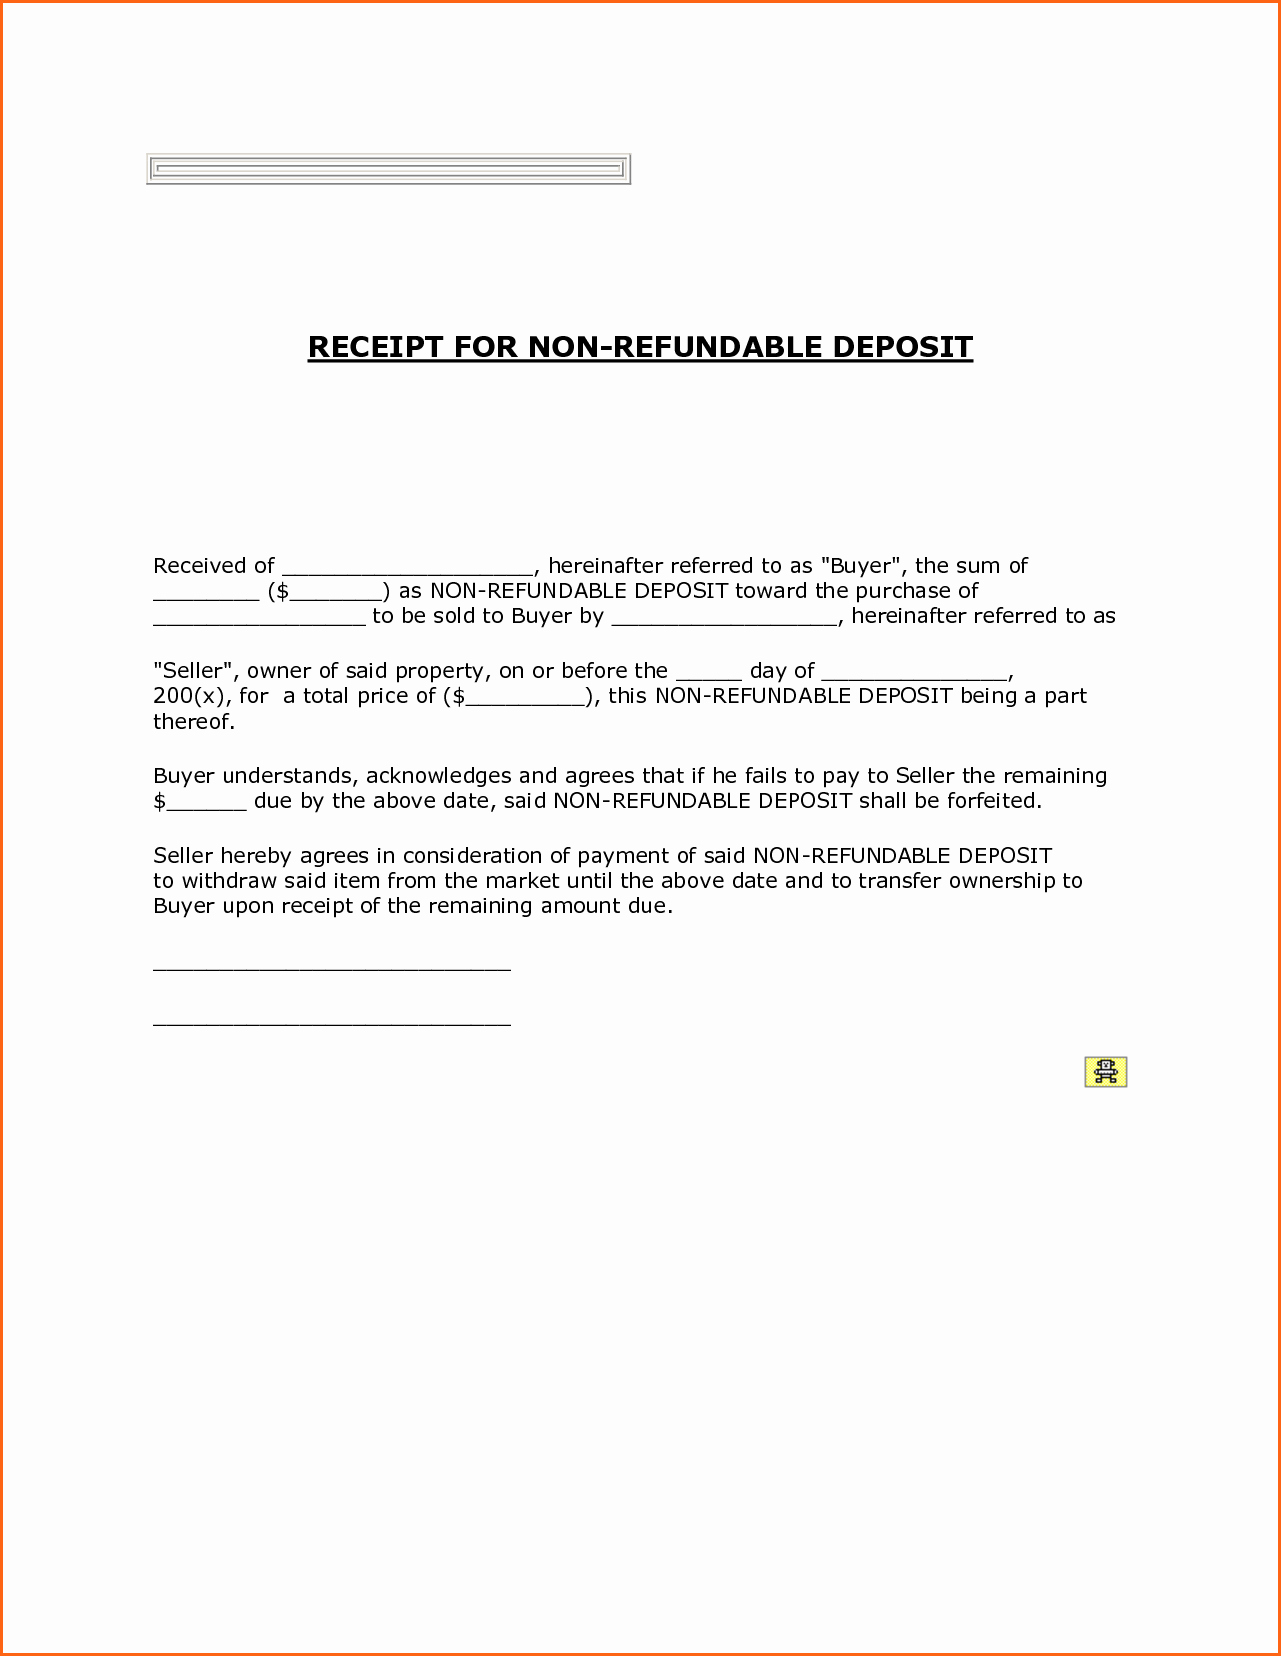 Grant Acknowledgement Letter Best Of 23 Of Grant Acknowledgement Receipt Template